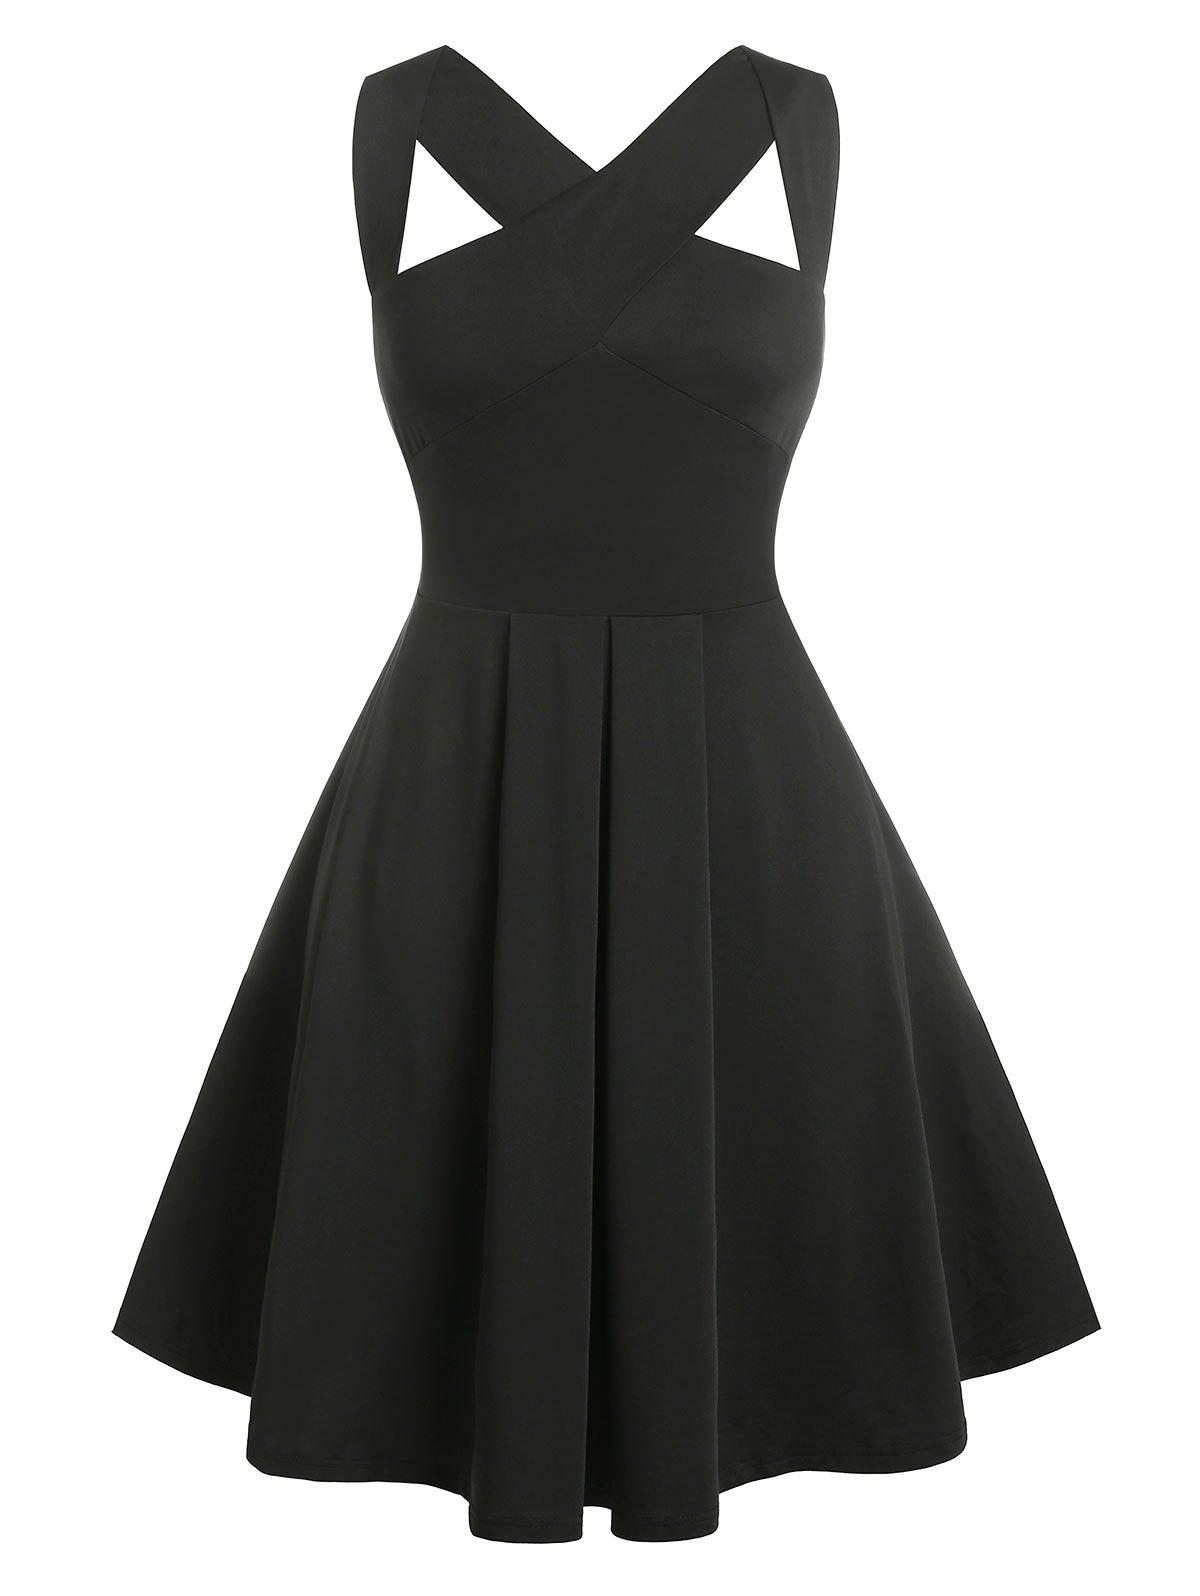 Trendy Vintage Sleeveless Cutout Fit and Flare Dress